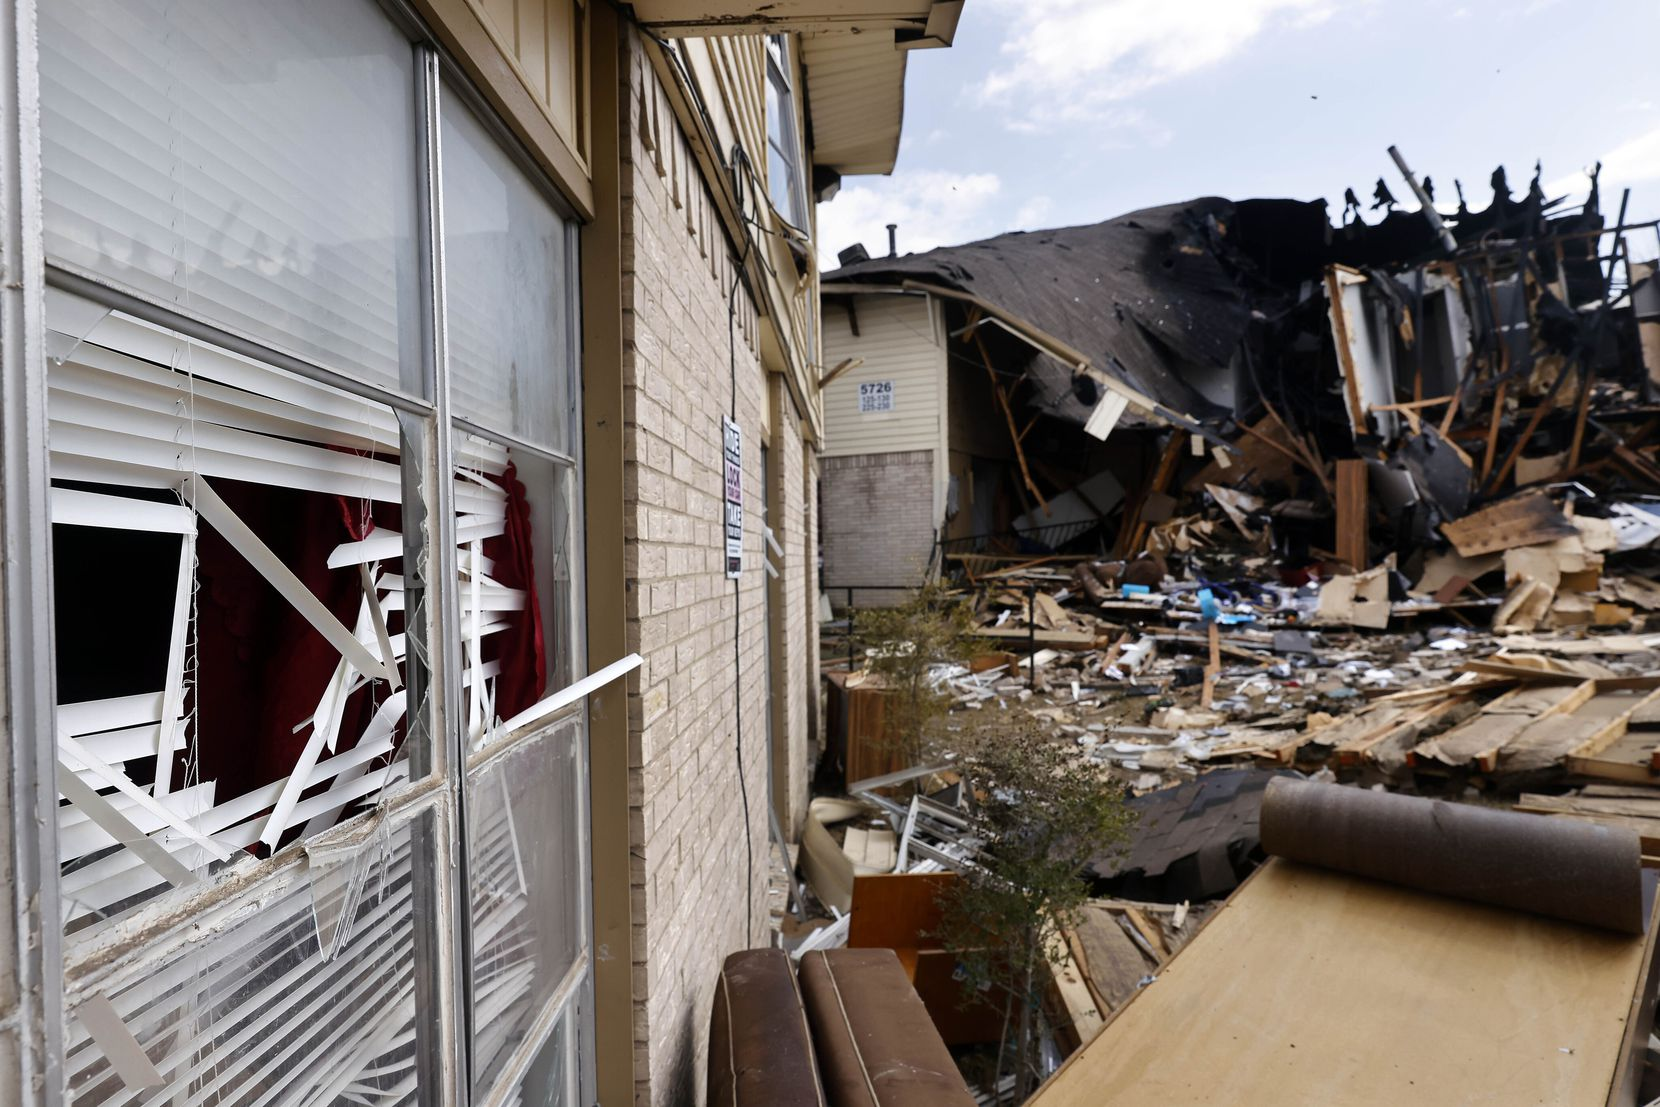 Exterior windows are visible in a nearby building following the explosion of a flat in the 5700 block of Highland Hills Drive.